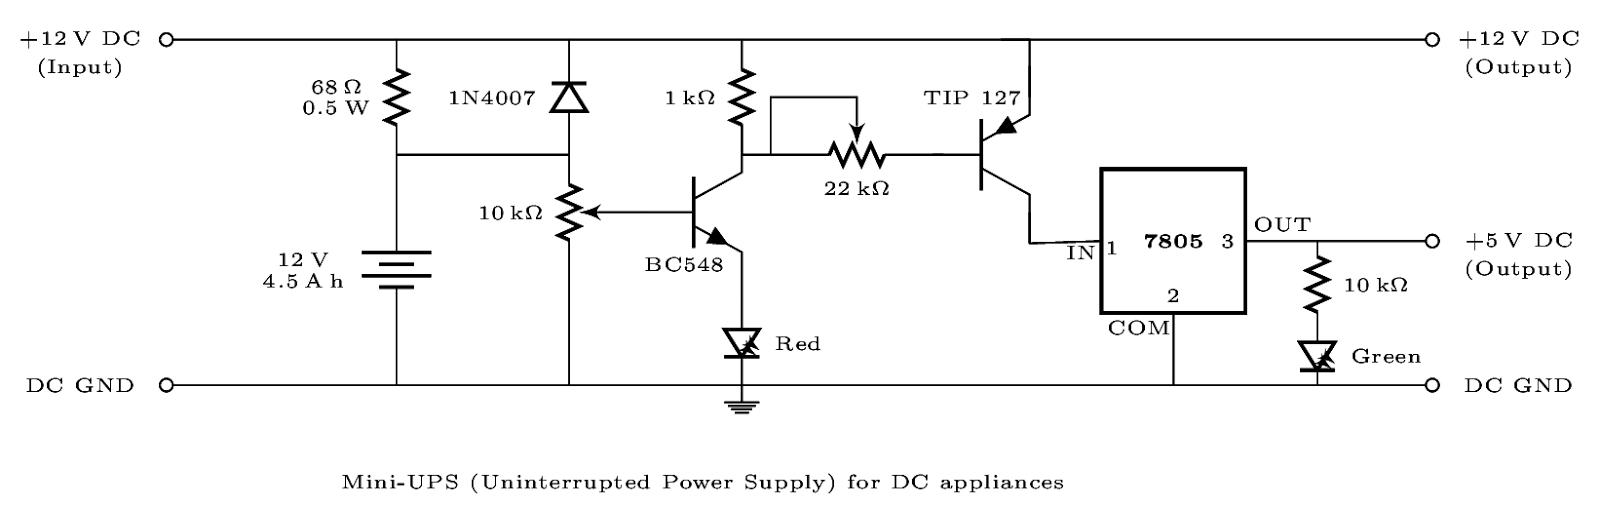 Technical musings drawing circuit diagrams in latex the latex code used to generate this diagram can be found at circuit ups on github a simple example of constructing a circuit diagram is ccuart Images